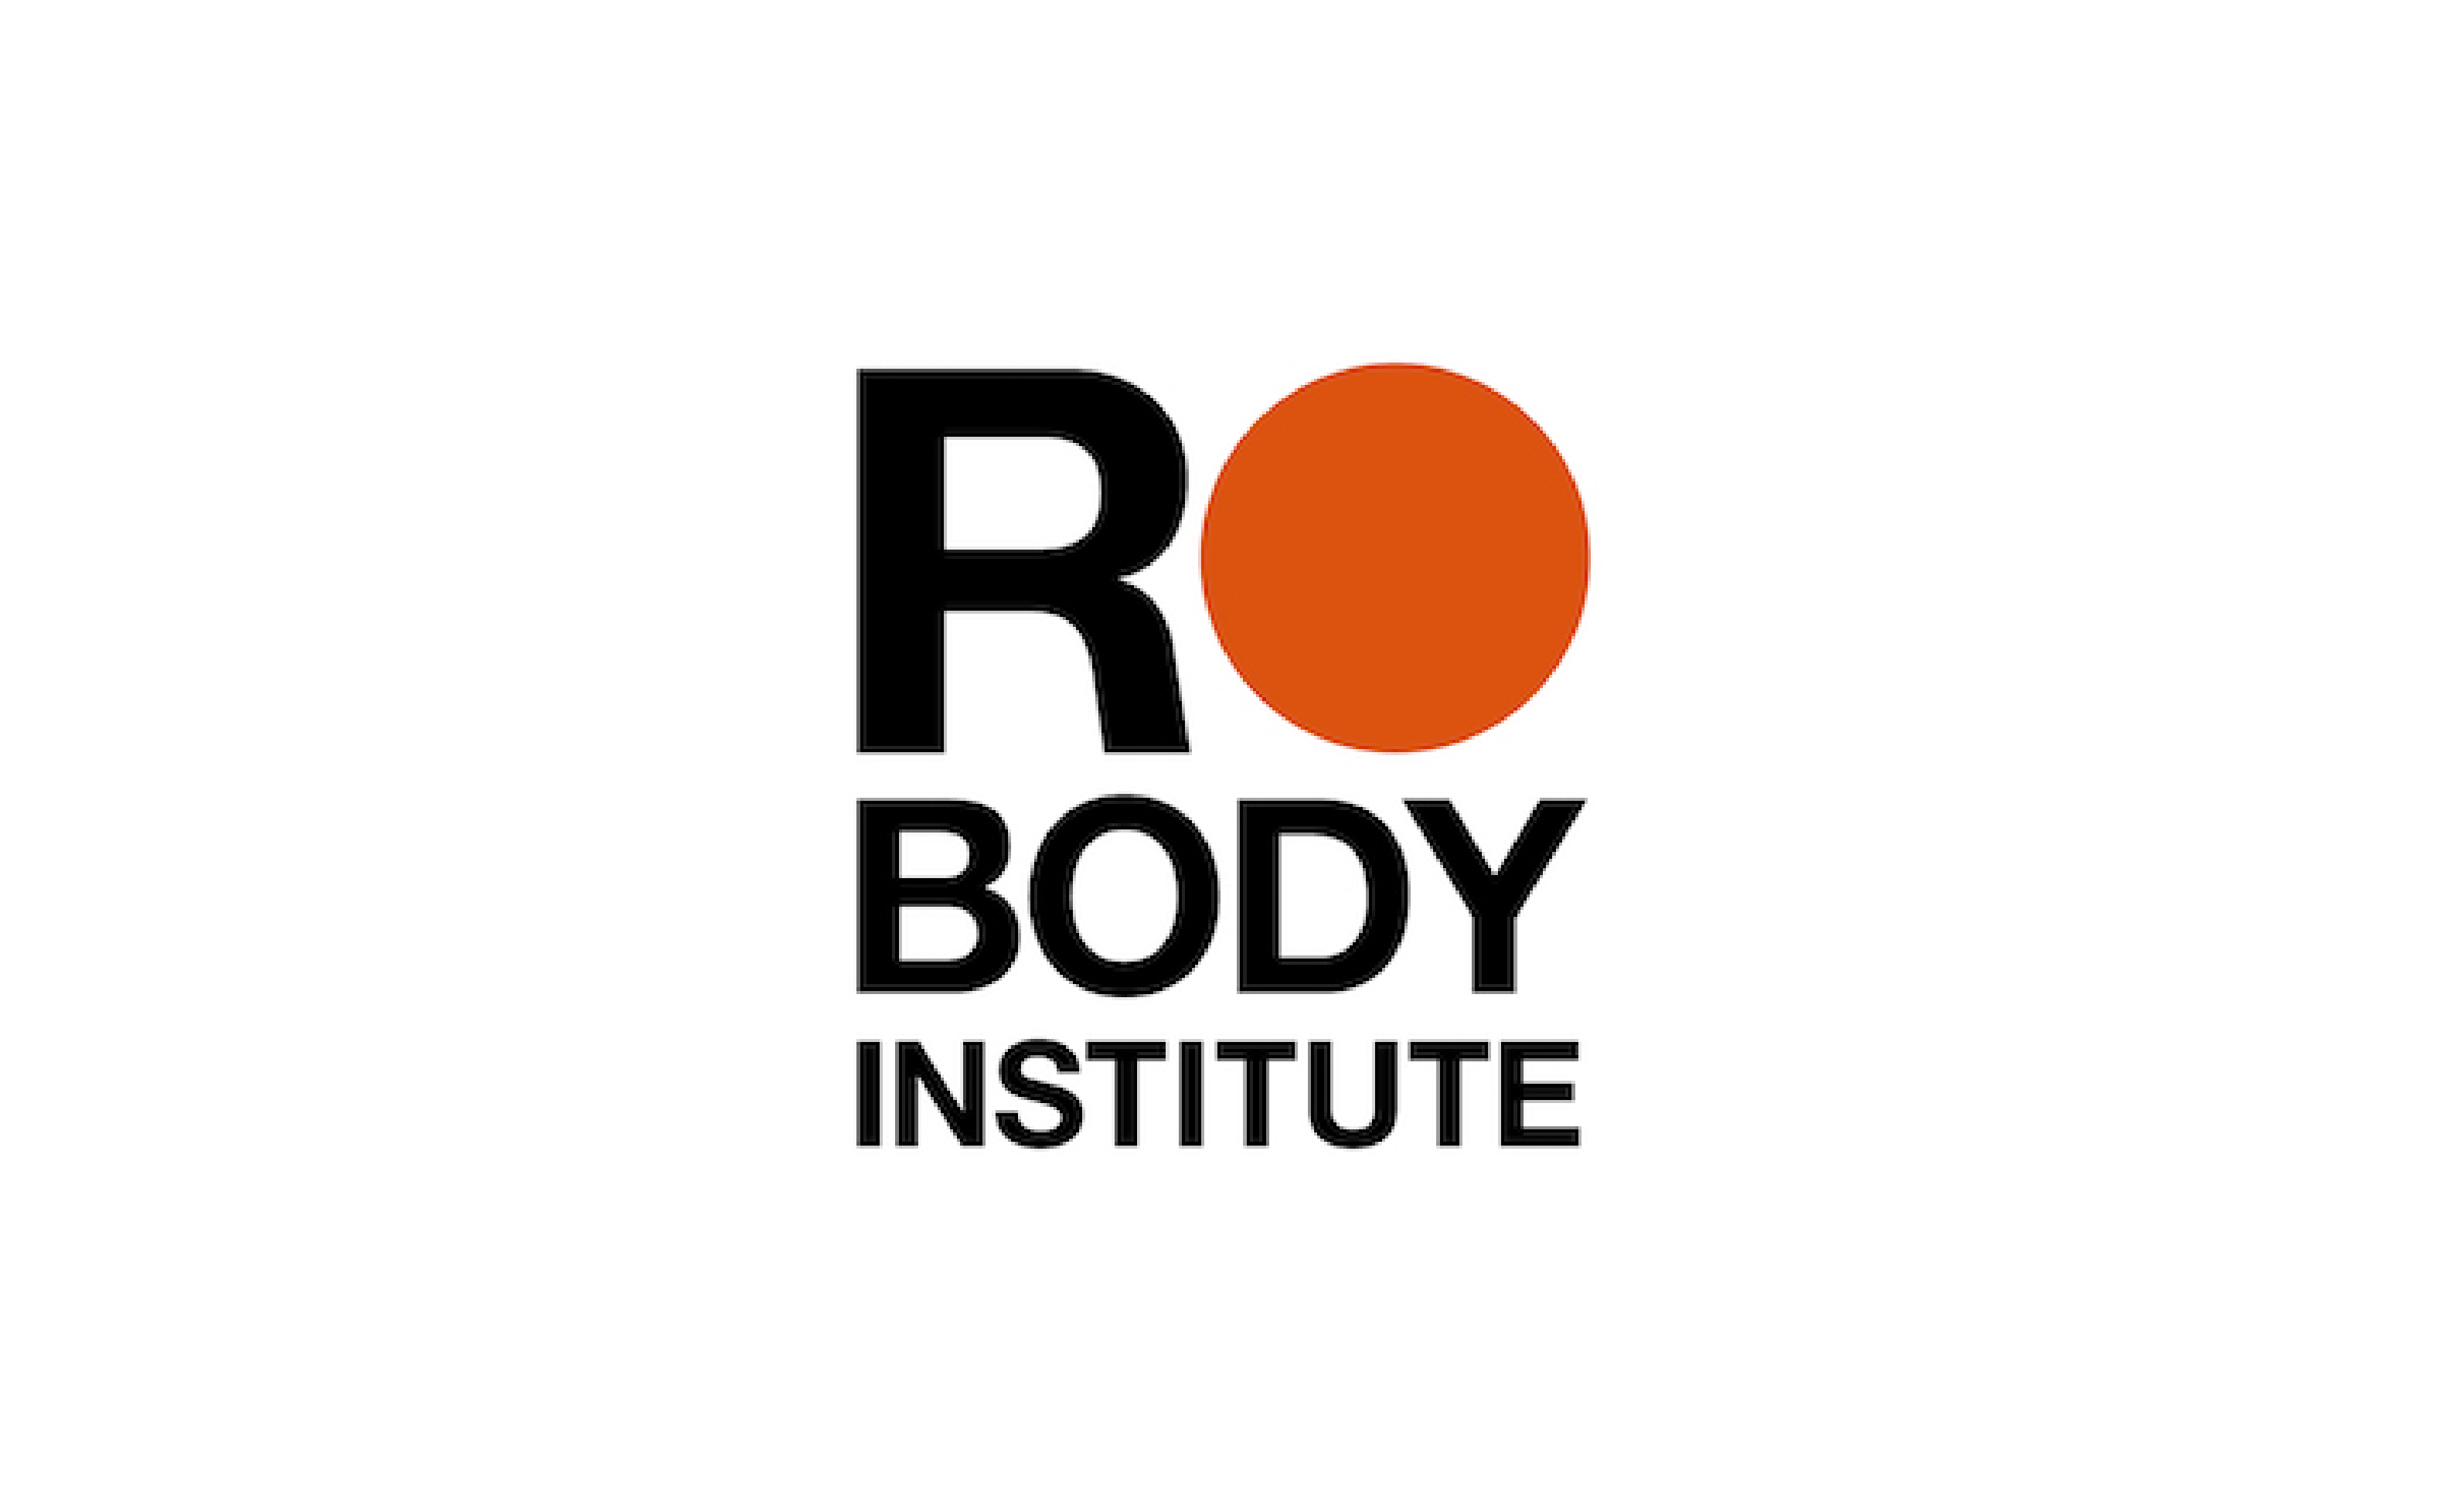 R-body project|R-BODY INSTITUTE